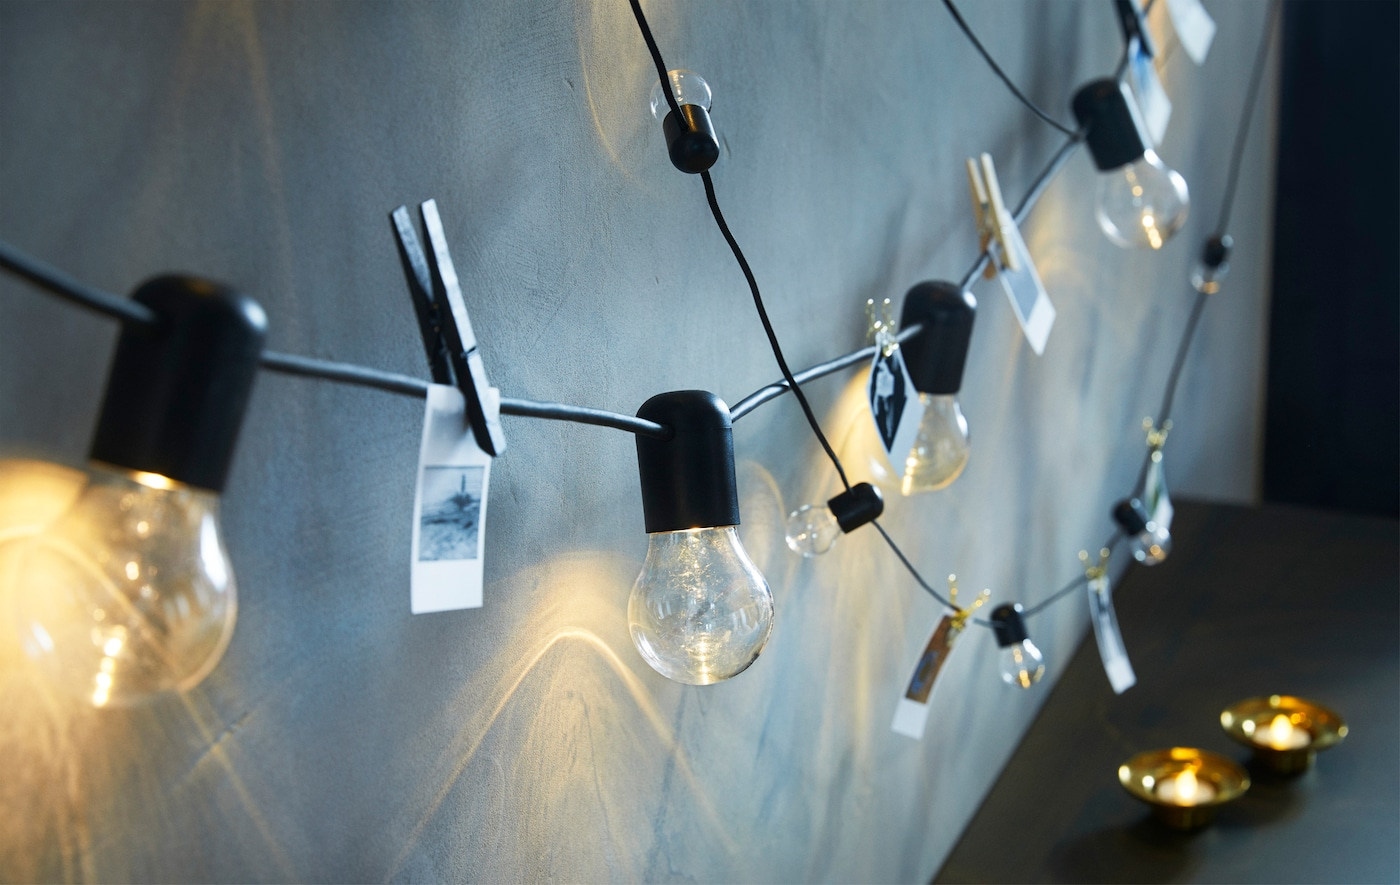 Two black lighting chains hanging from a wall with small illustrations clipped to the cords between the bulbs.